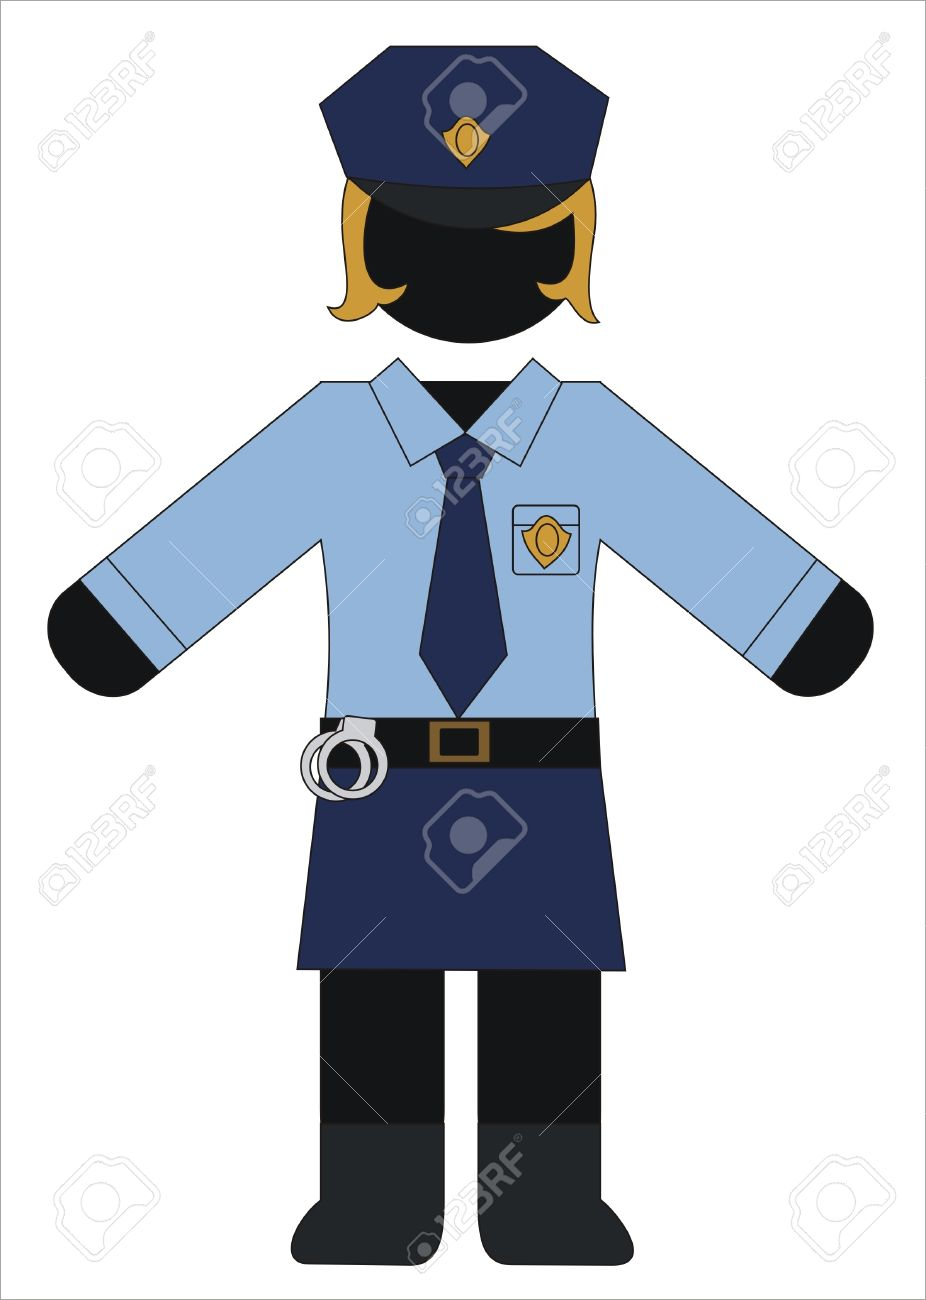 Police uniform clipart - Clipground